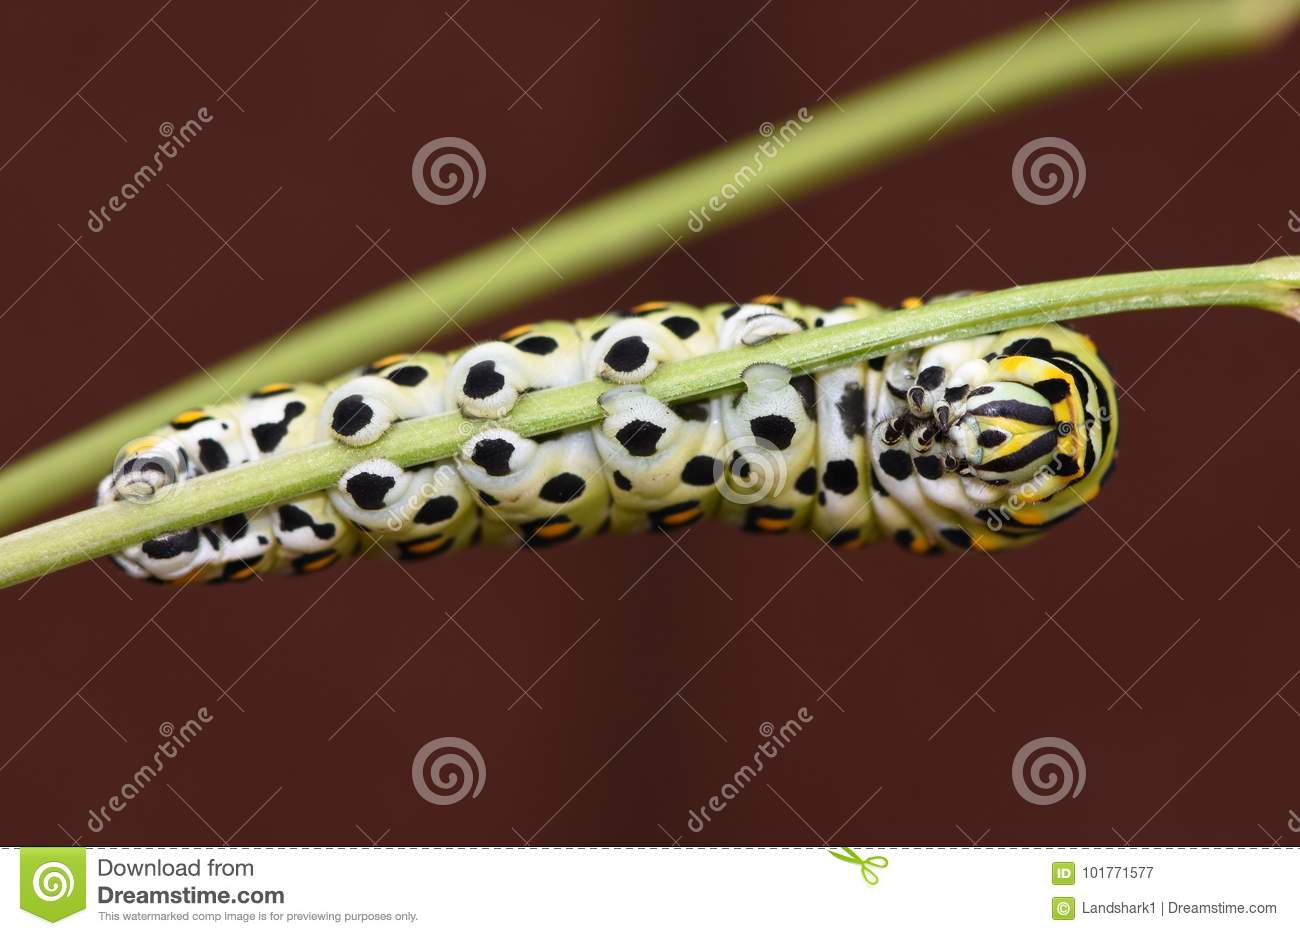 Black Swallowtail Caterpillar - Butterfly larva, also called a Parsley worm.